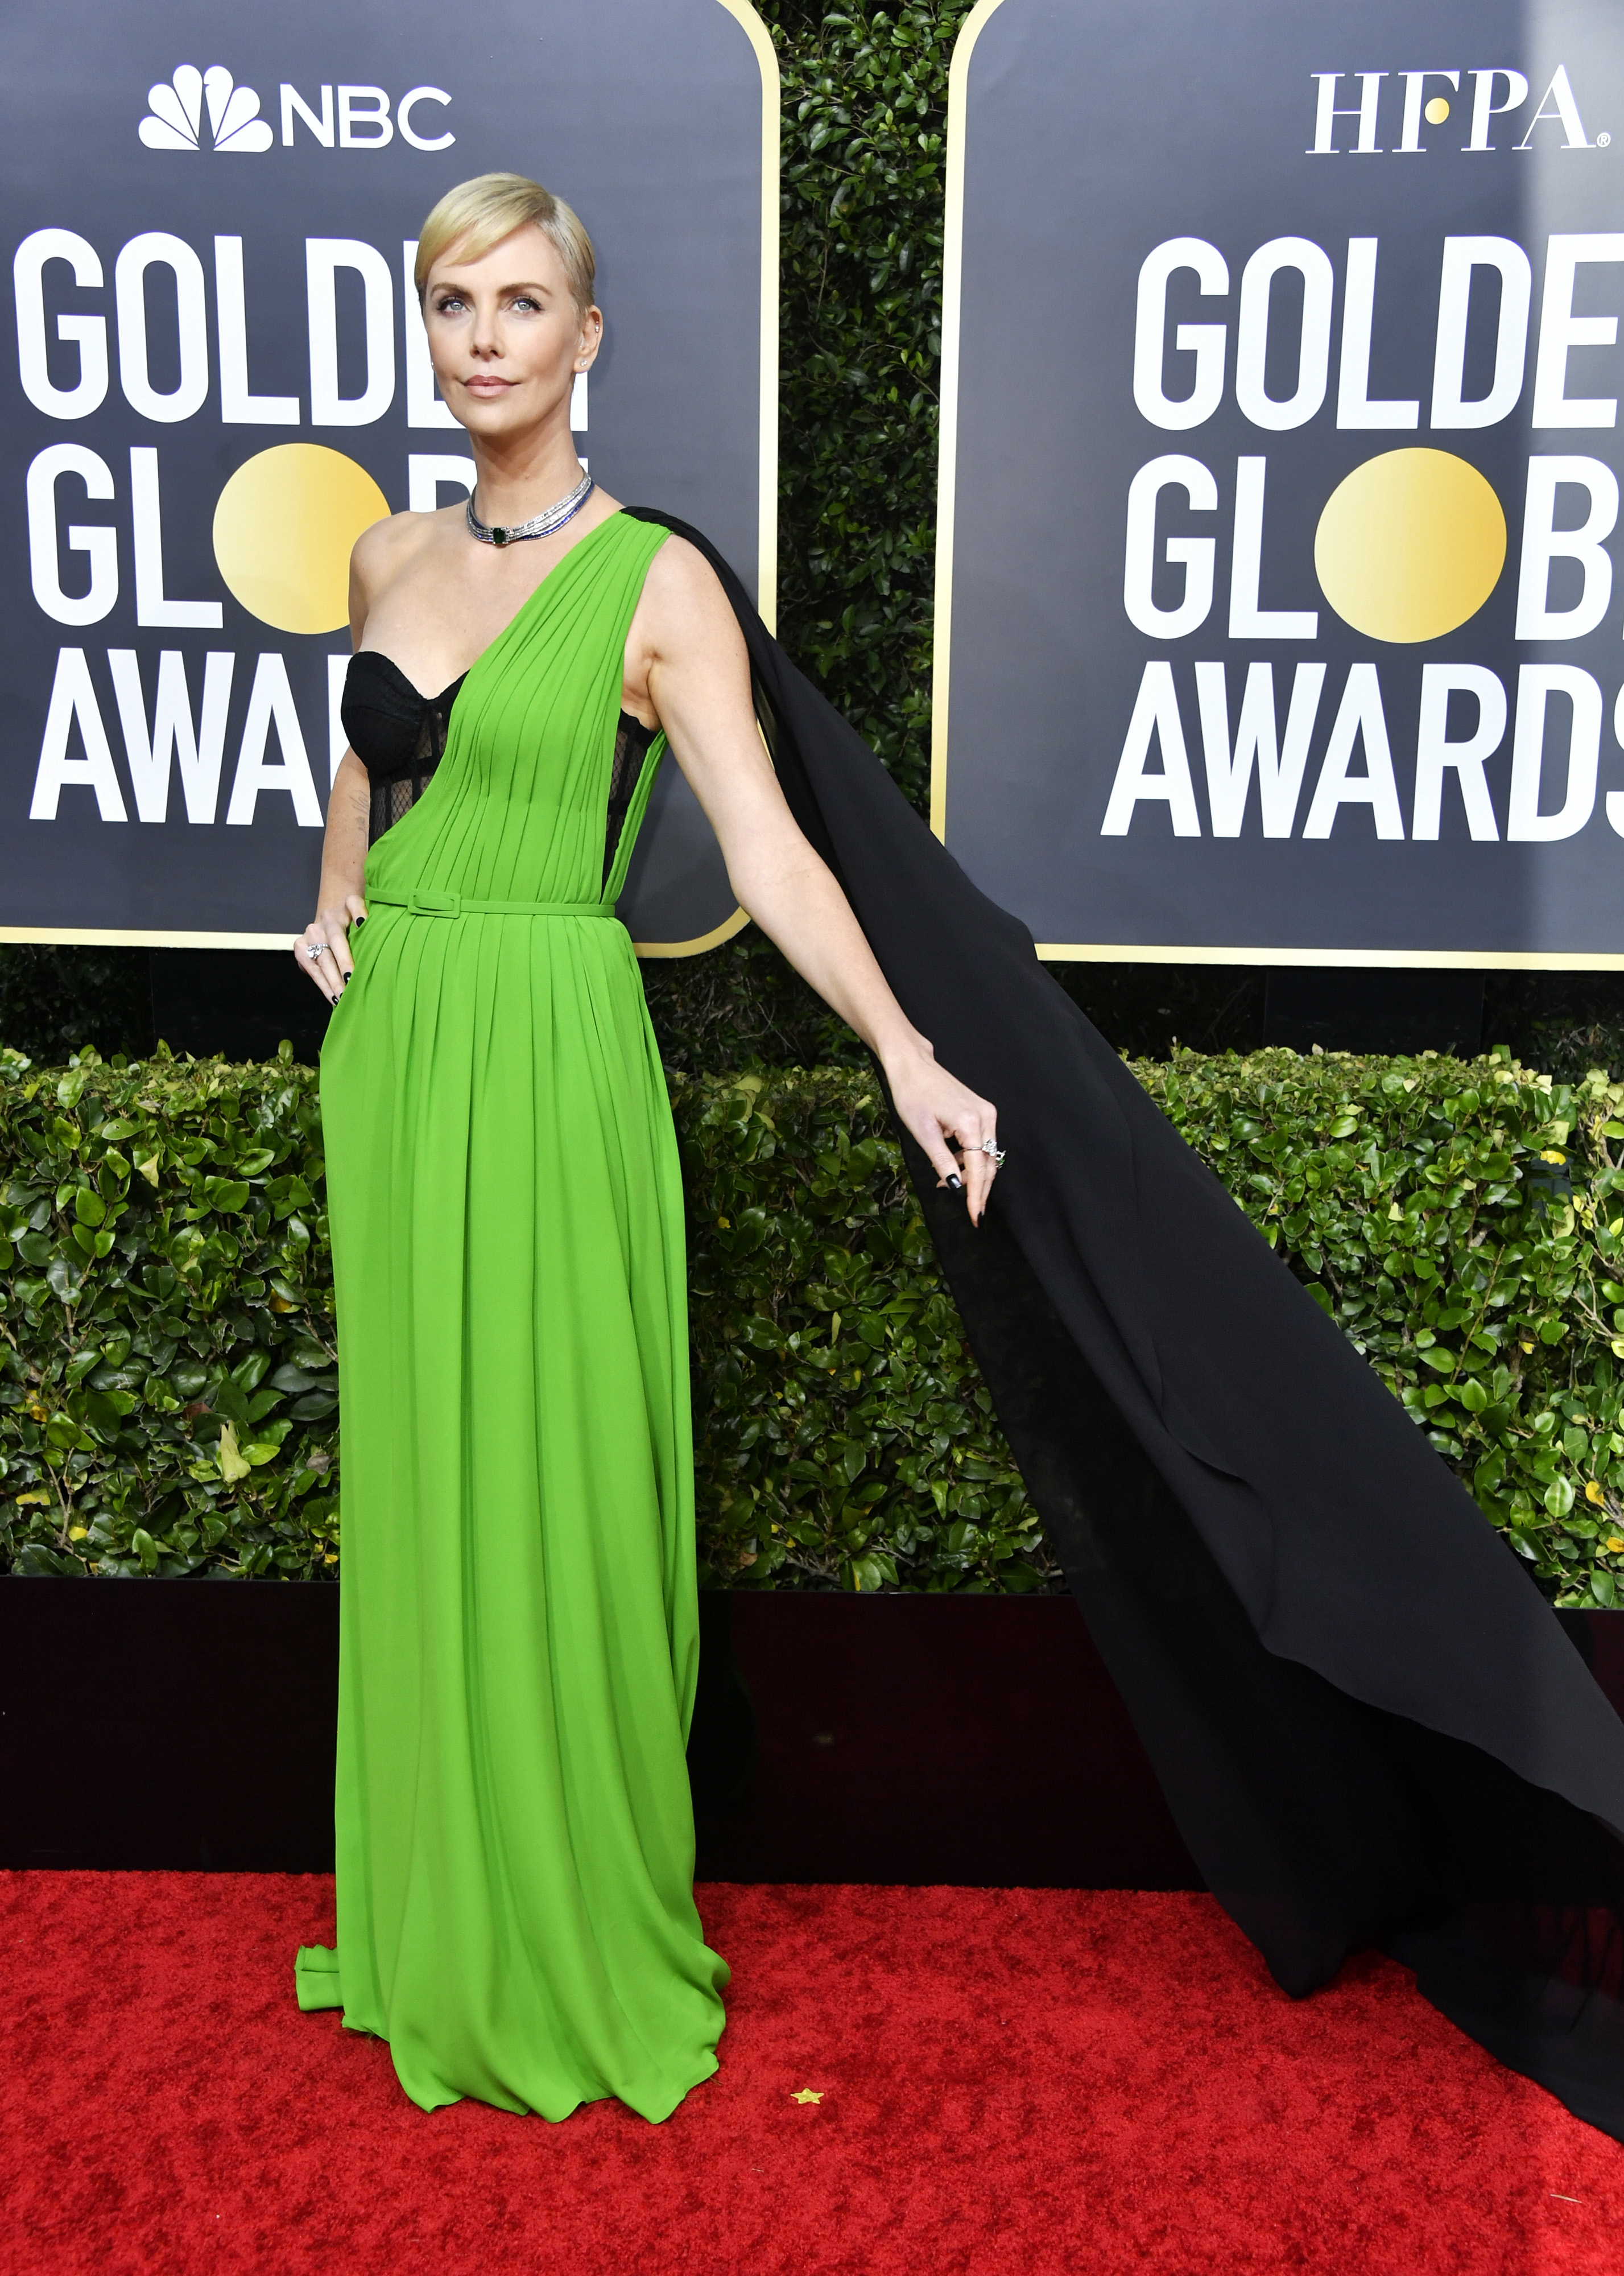 BEVERLY HILLS, CALIFORNIA - JANUARY 05: Charlize Theron attends the 77th Annual Golden Globe Awards at The Beverly Hilton Hotel on January 05, 2020 in Beverly Hills, California. (Photo by Frazer Harrison/Getty Images)